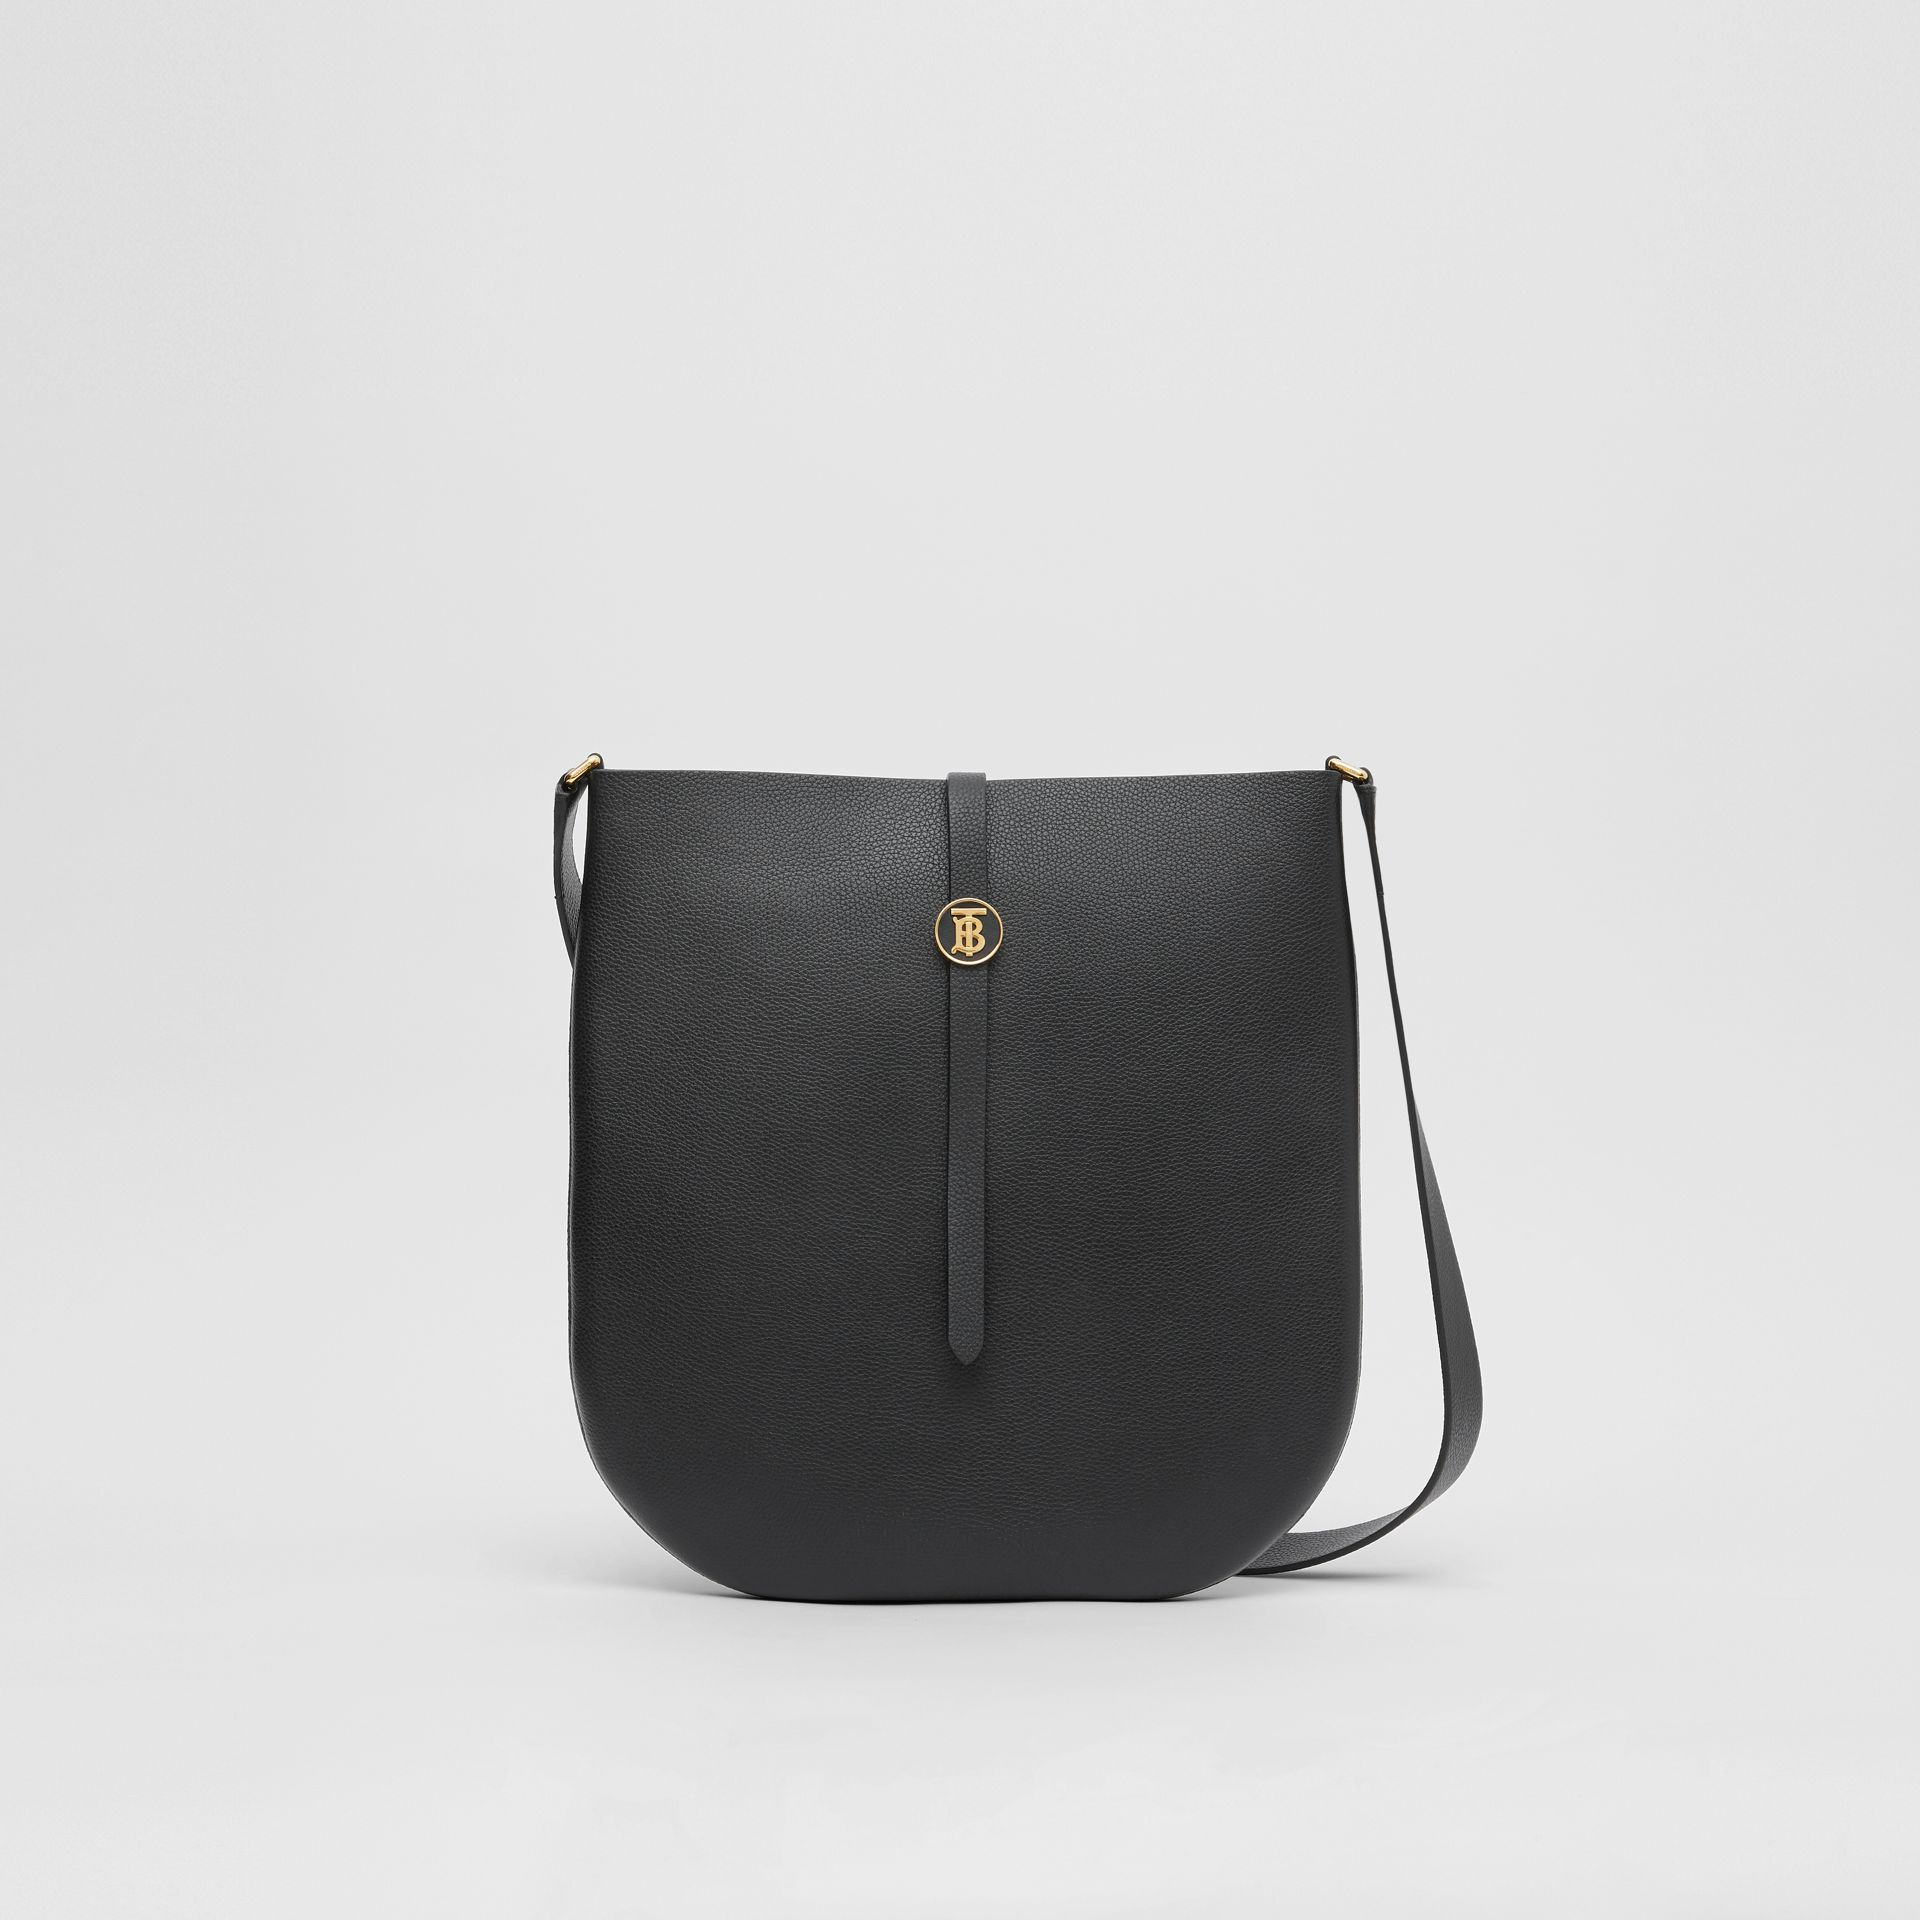 Grainy Leather Anne Bag in Black - Women | Burberry United States - gallery image 0